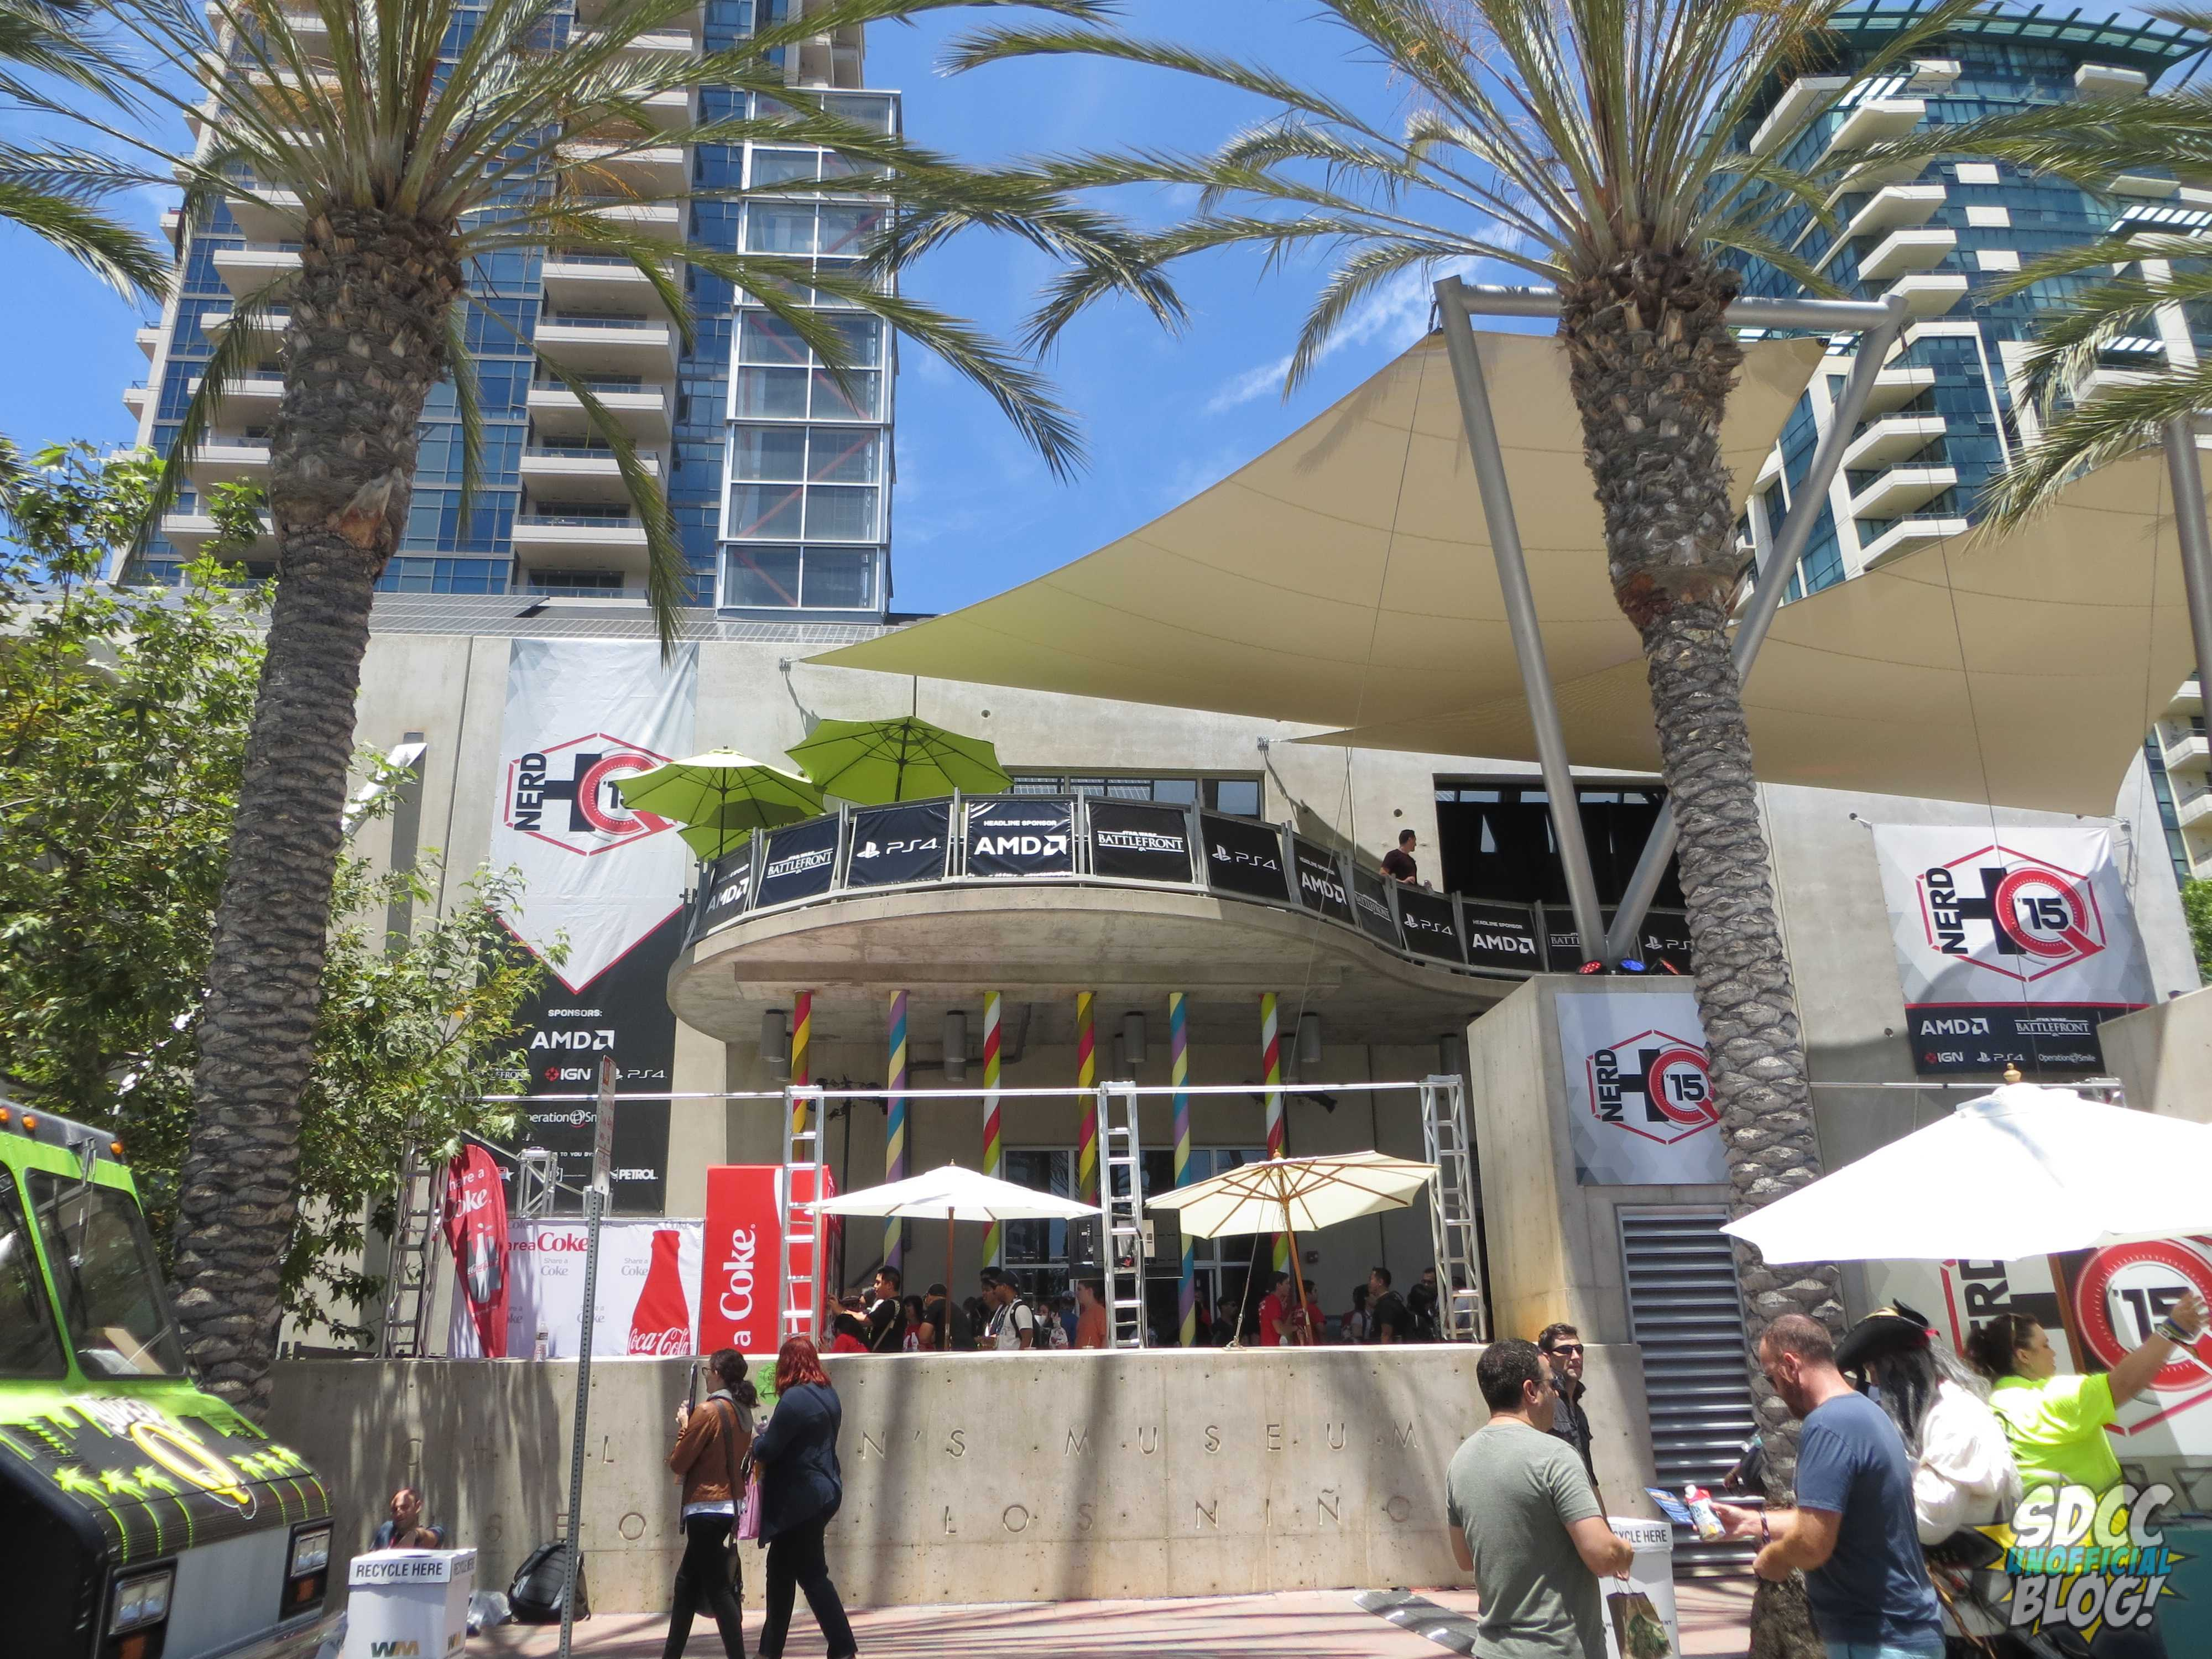 Nerd Hq 2015 New Location Offered Sdcc Attendees More Than Ever Before San Diego Comic Con Unofficial Blog